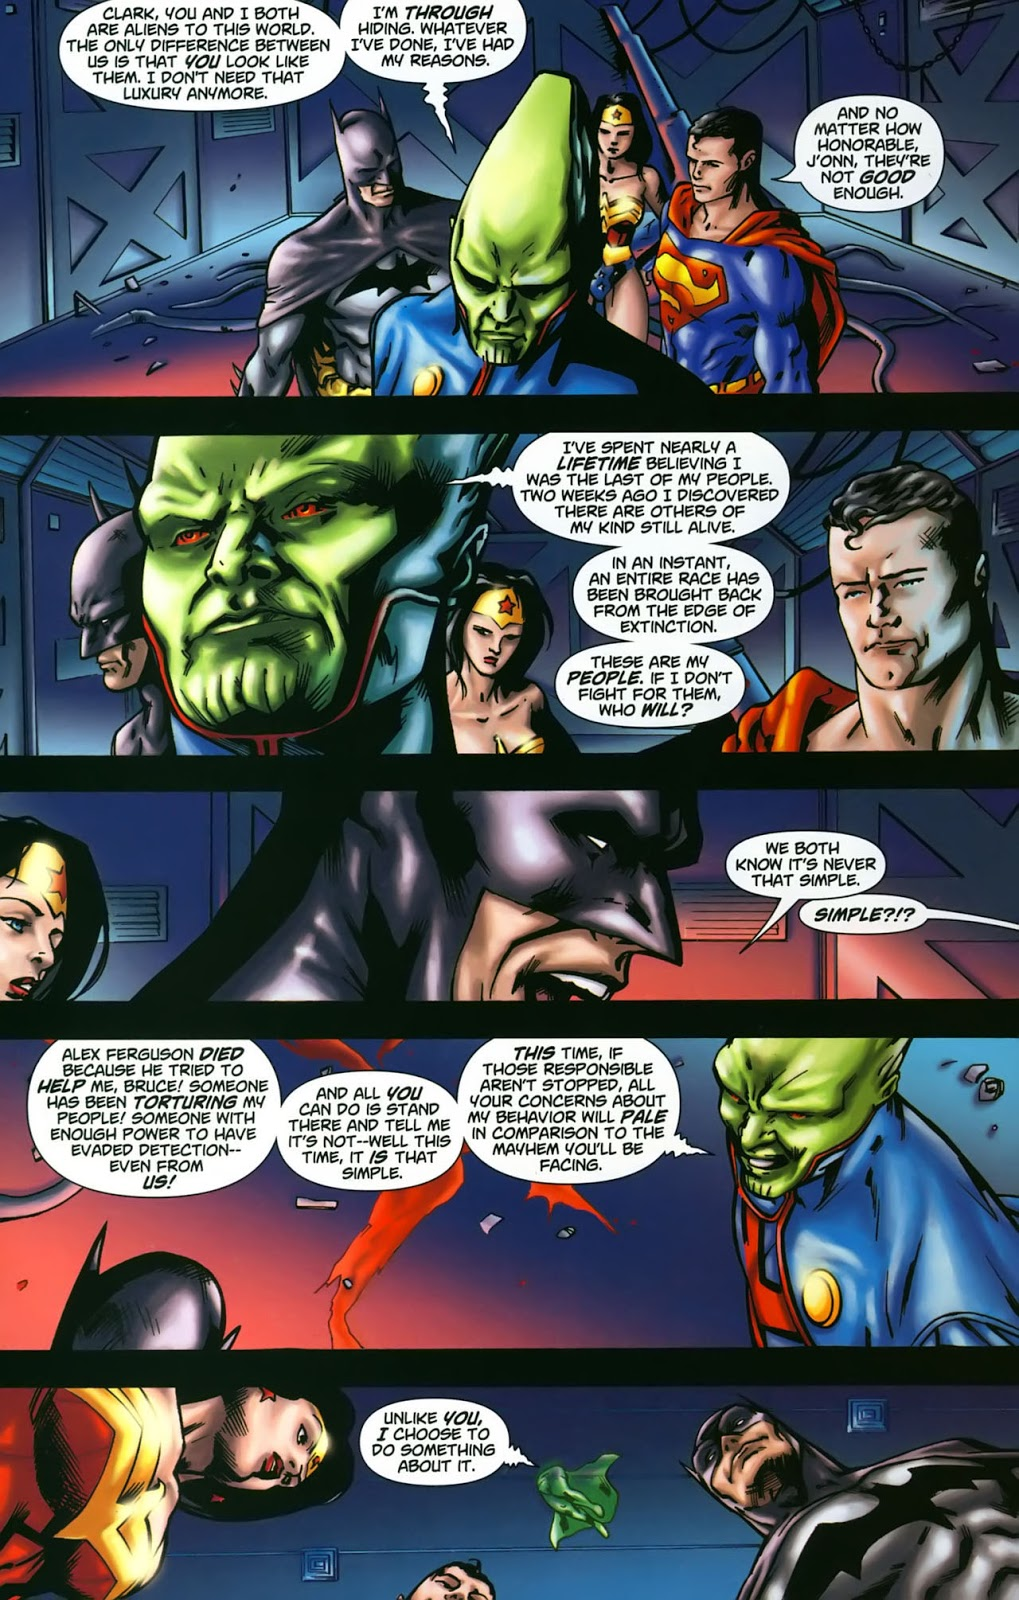 Martian Manhunter The Others Among Us review